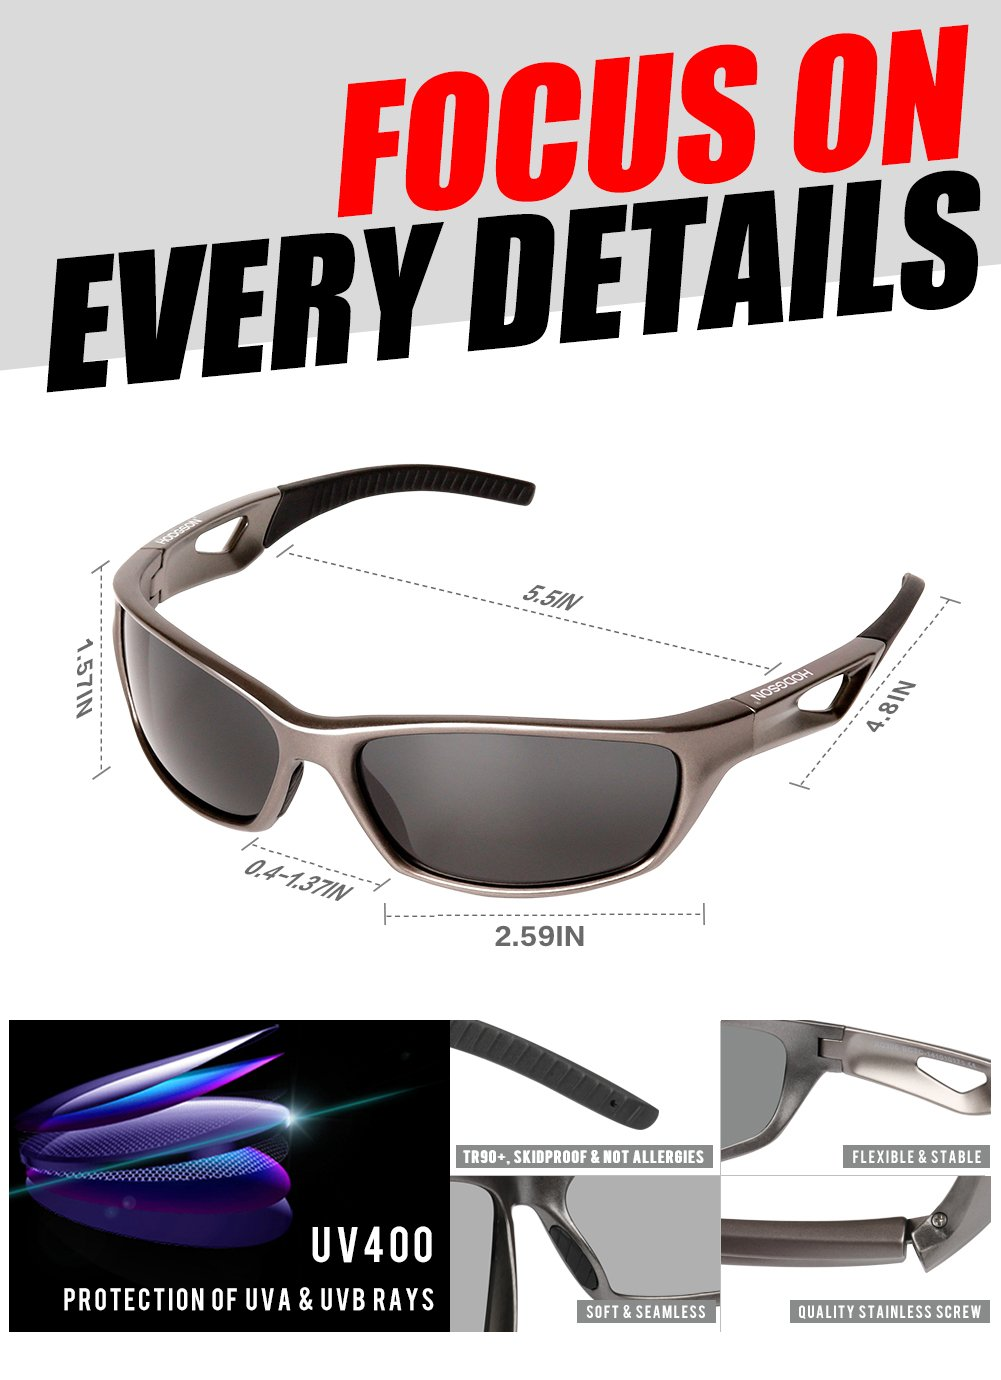 HODGSON Sports Polarized Sunglasses for Men Women, UV400 Protection Unbreakable Sports Glasses for Cycling, Baseball Riding, Driving, Running, Golf and Other Outdoor Activities (Dark Brown) by HODGSON (Image #3)